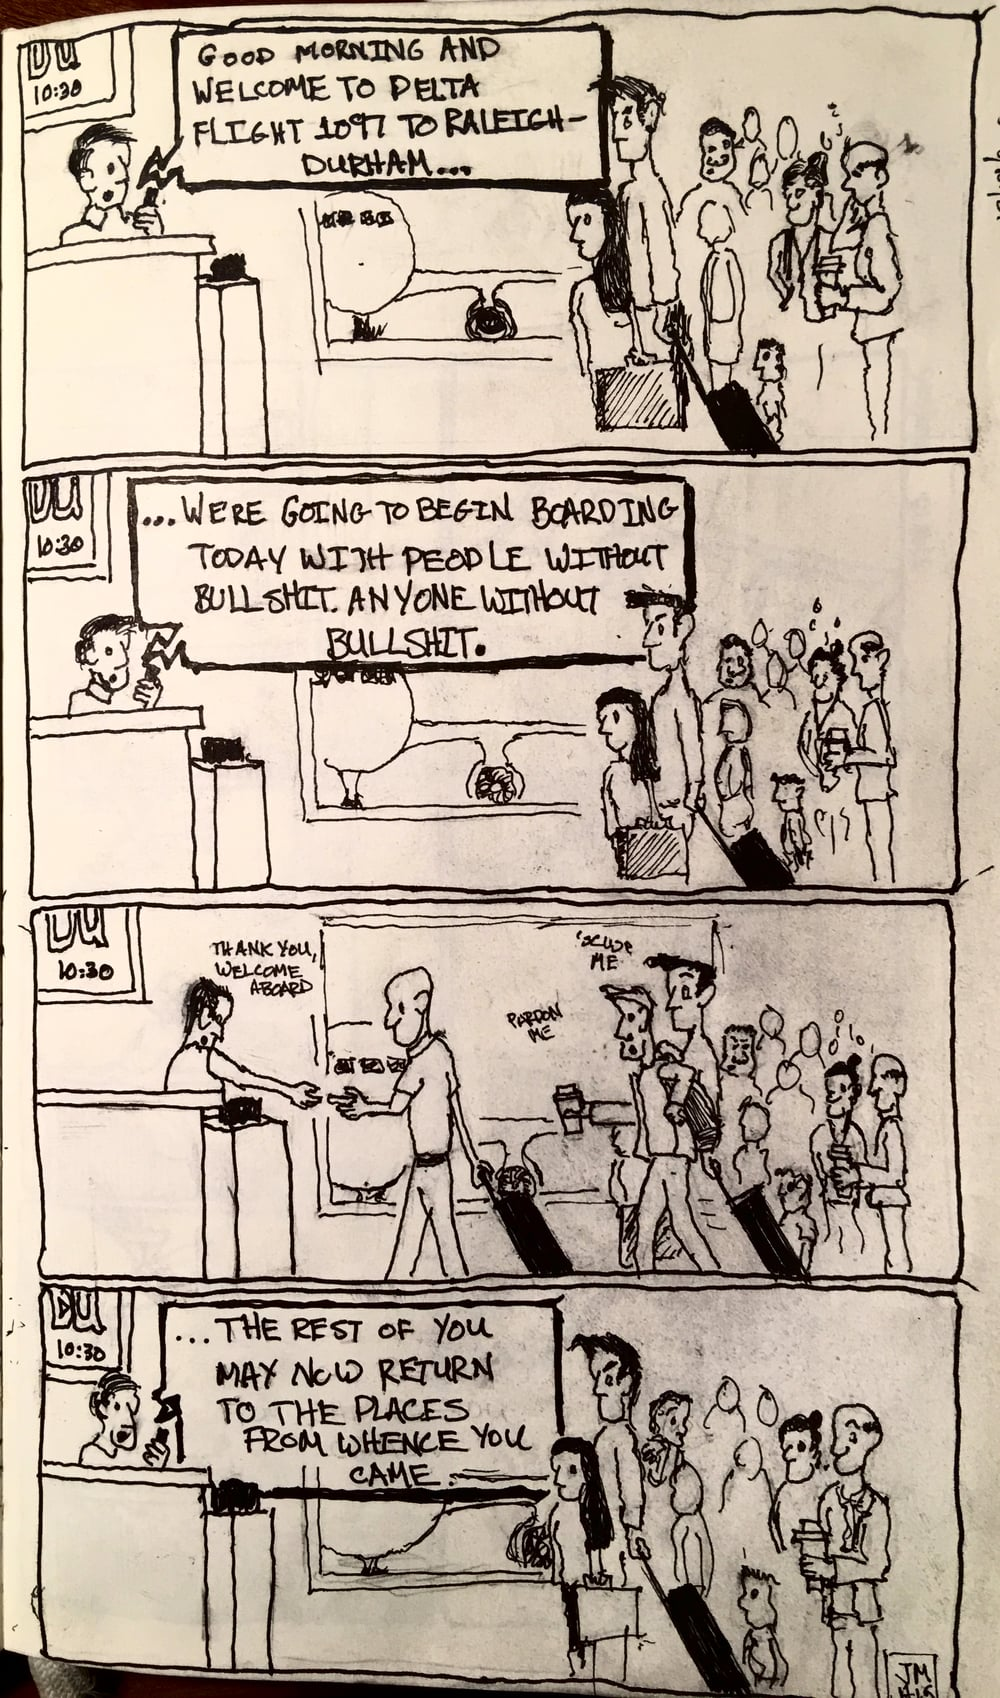 Holiday comics: The moral here is that most people on airplanes are garbage people.